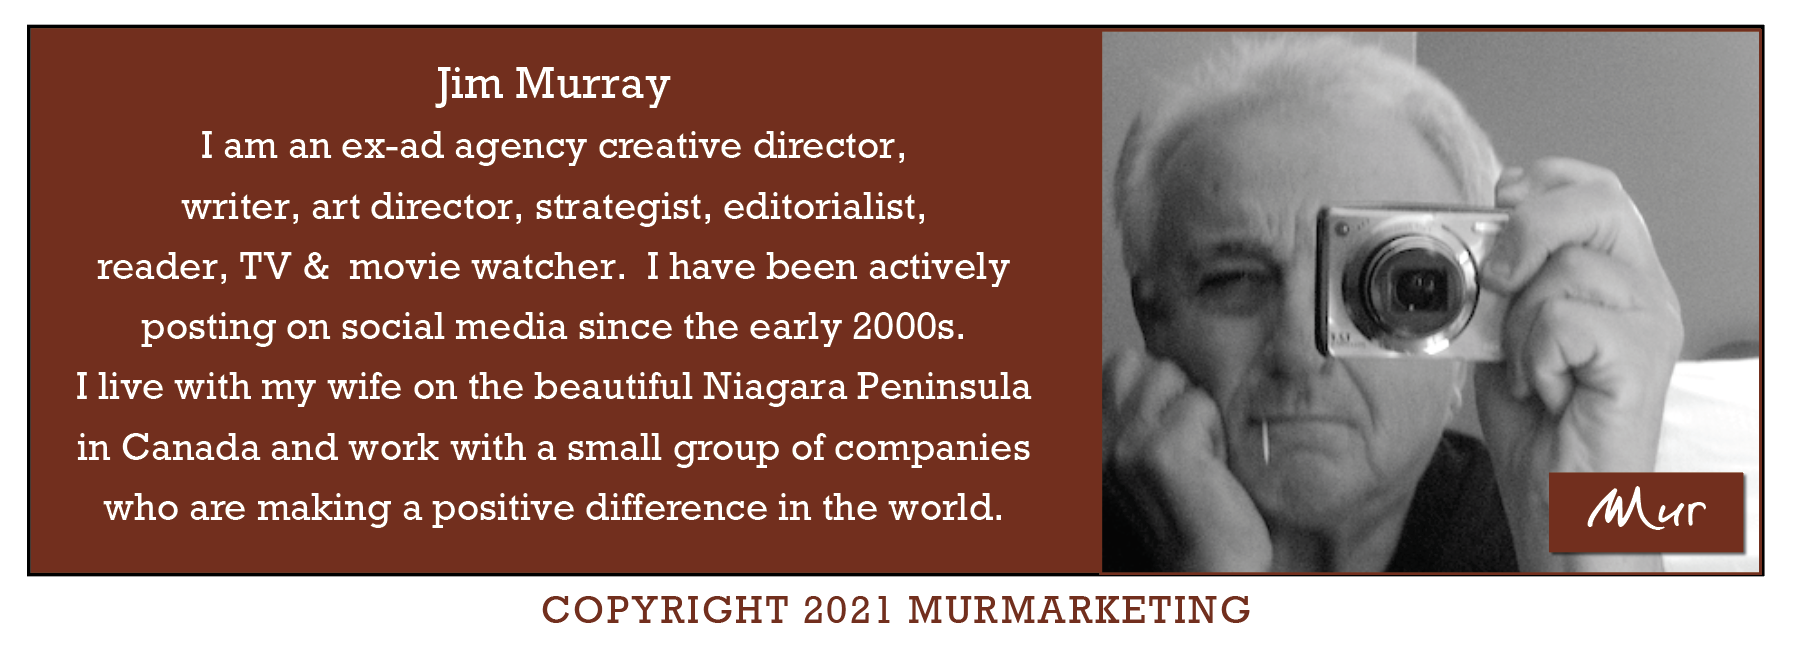 Jim Murray I am an ex-ad agency creative director, writer, art director, strategist, editorialist, reader, TV & movie watcher. I have been actively  posting on social media since the early 2000s.  I live with my wife on the beautiful Niagara Peninsula  in Canada and work with a small group of companies  who are making a positive difference in the world.     COPYRIGHT 2021 MURMARKETING